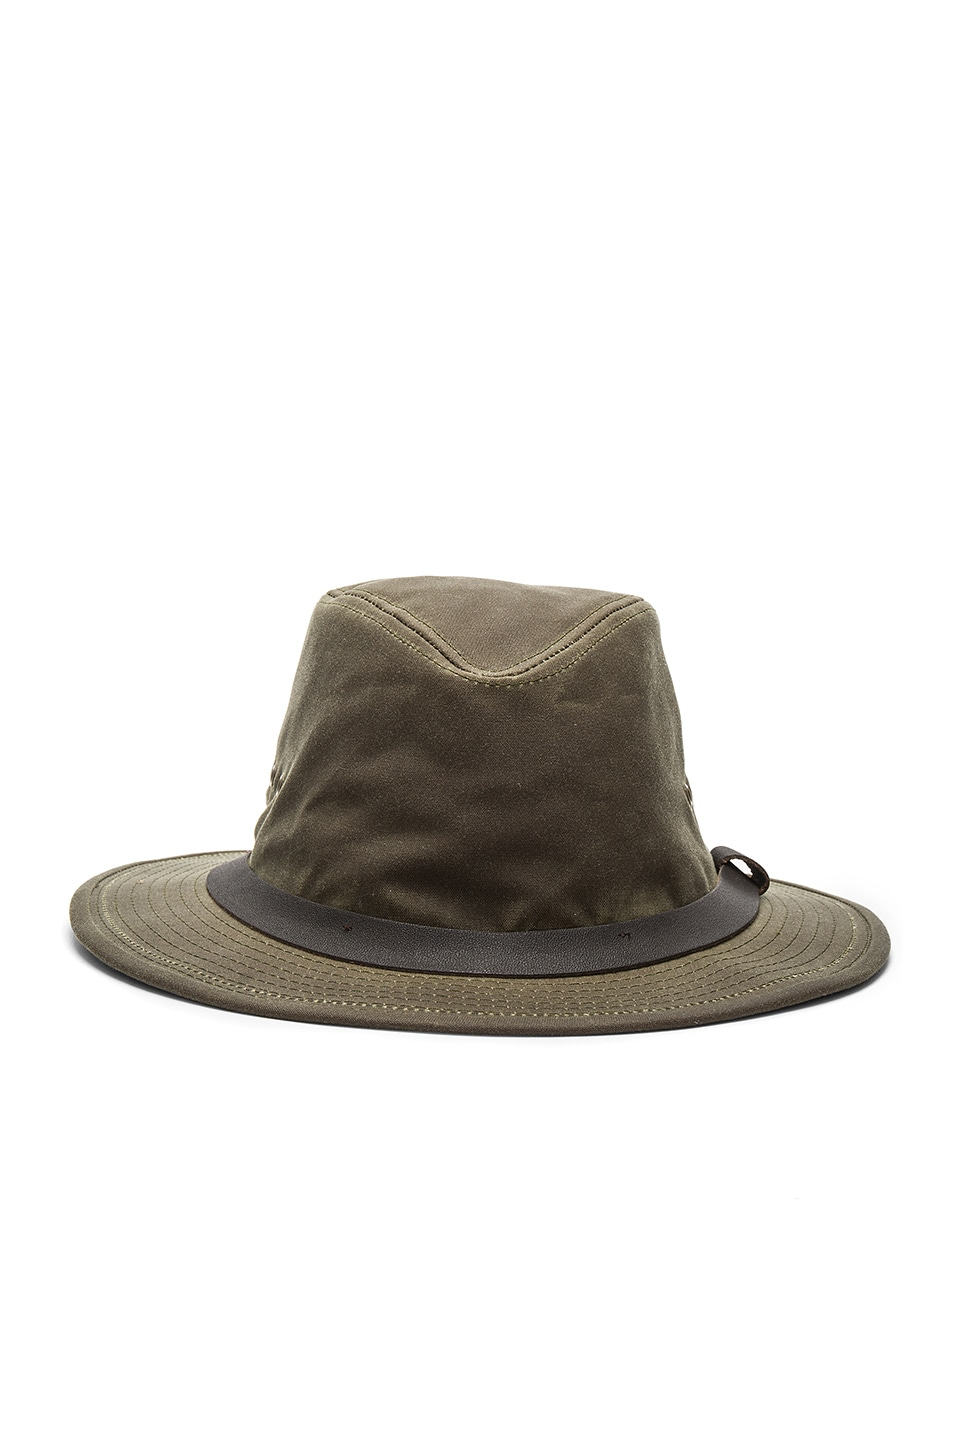 Shelter Packer Hat by Filson